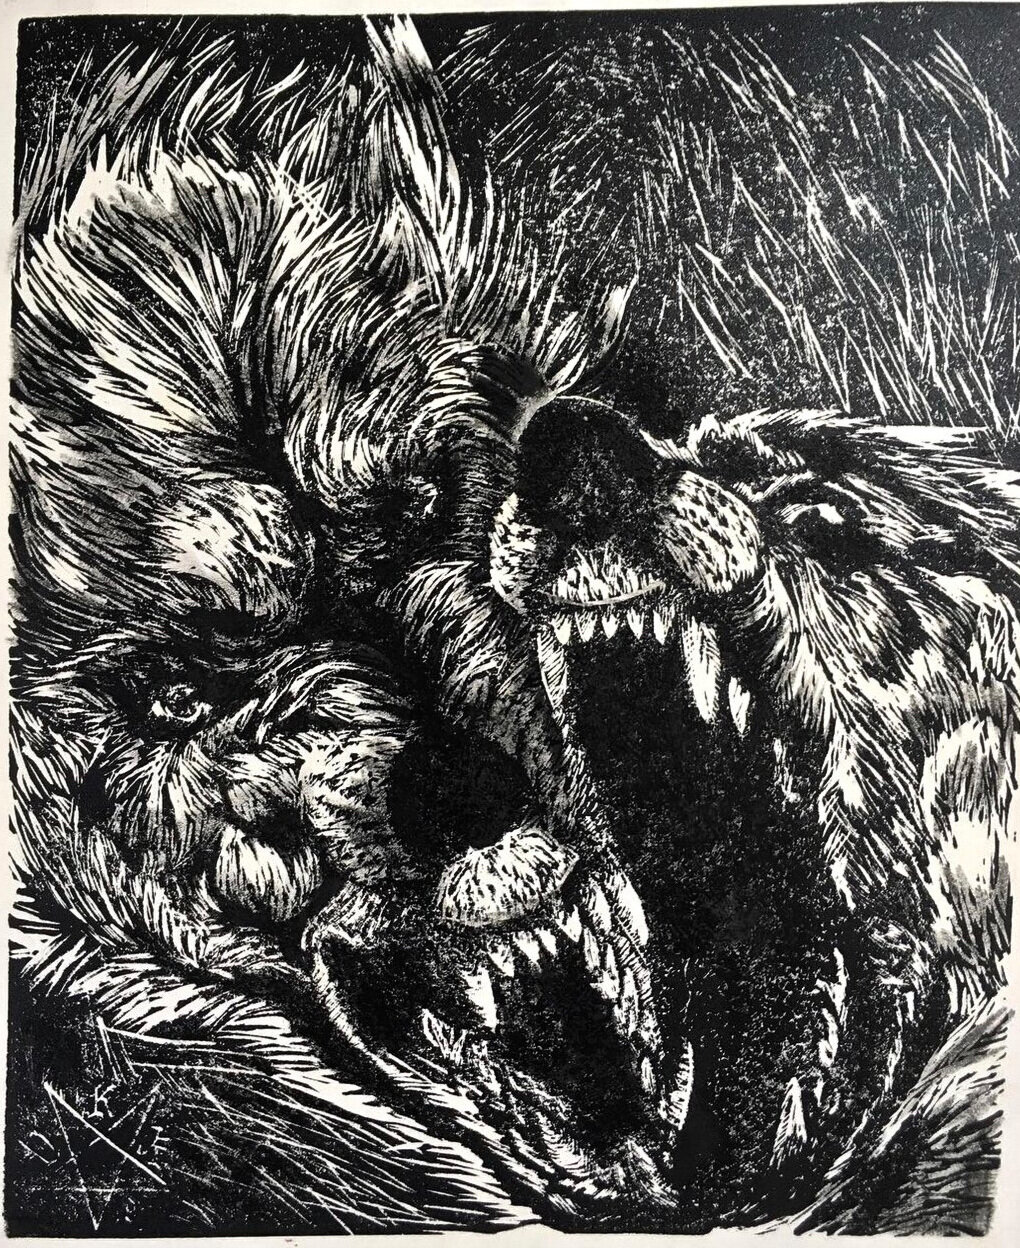 """""""F*ck Around, See What Happens""""  15 x 23"""" linocut monotype on recycled paper, edition of 5, August 2019."""